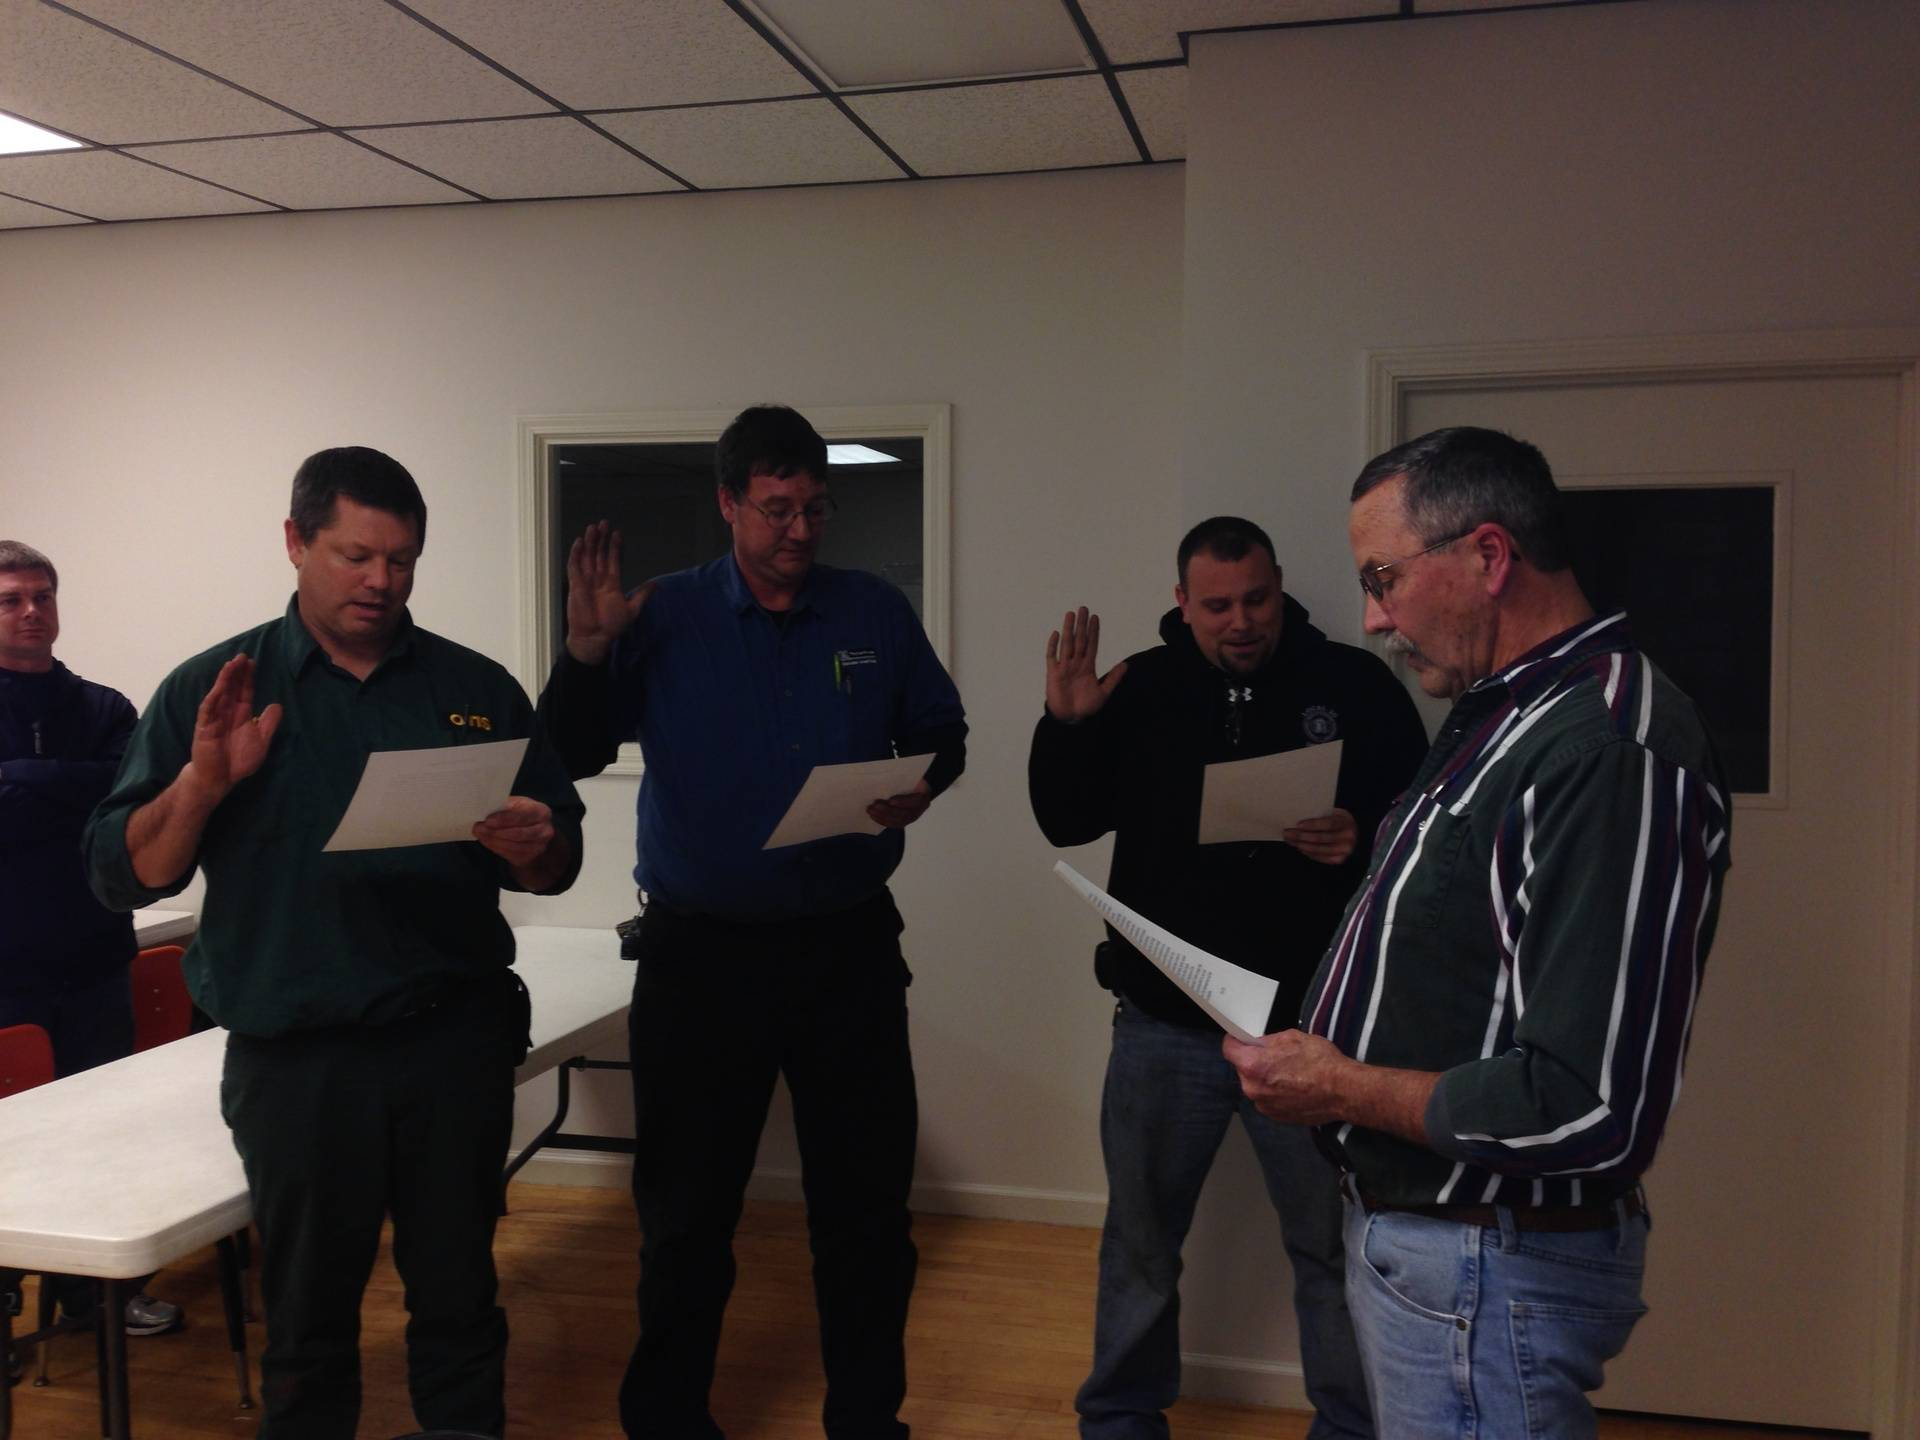 Swearing in of new Officers